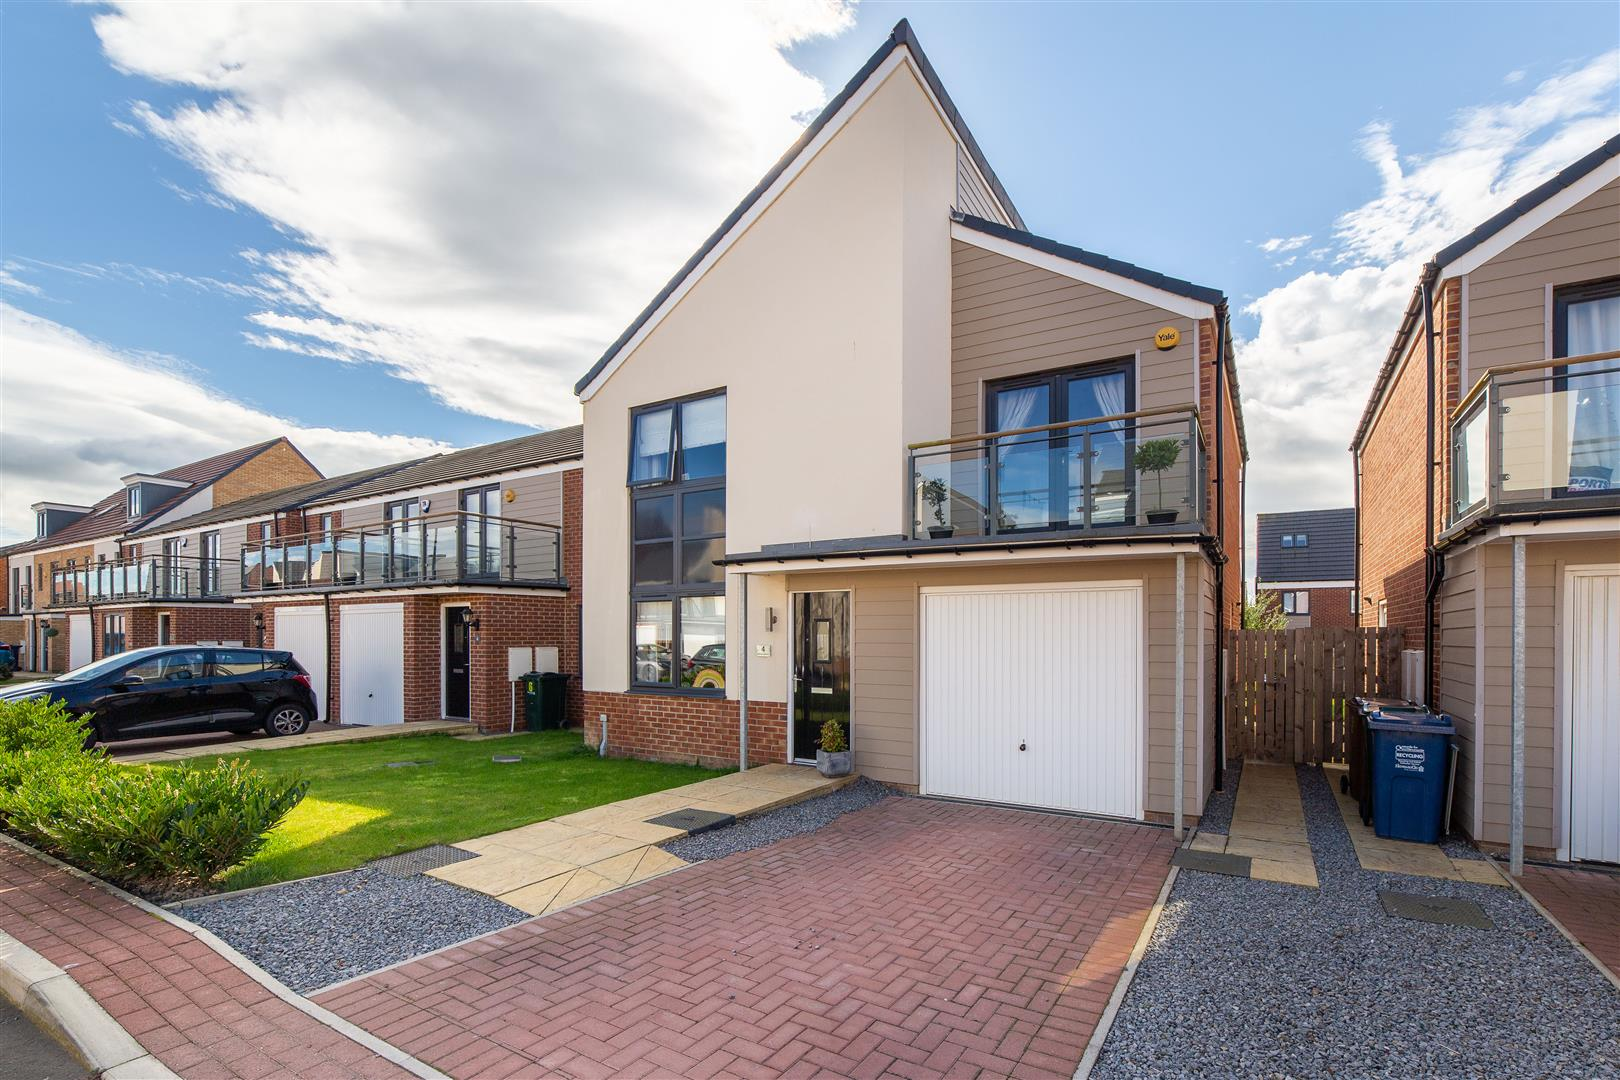 4 bed detached house for sale in Newcastle Upon Tyne, NE13 9DN, NE13